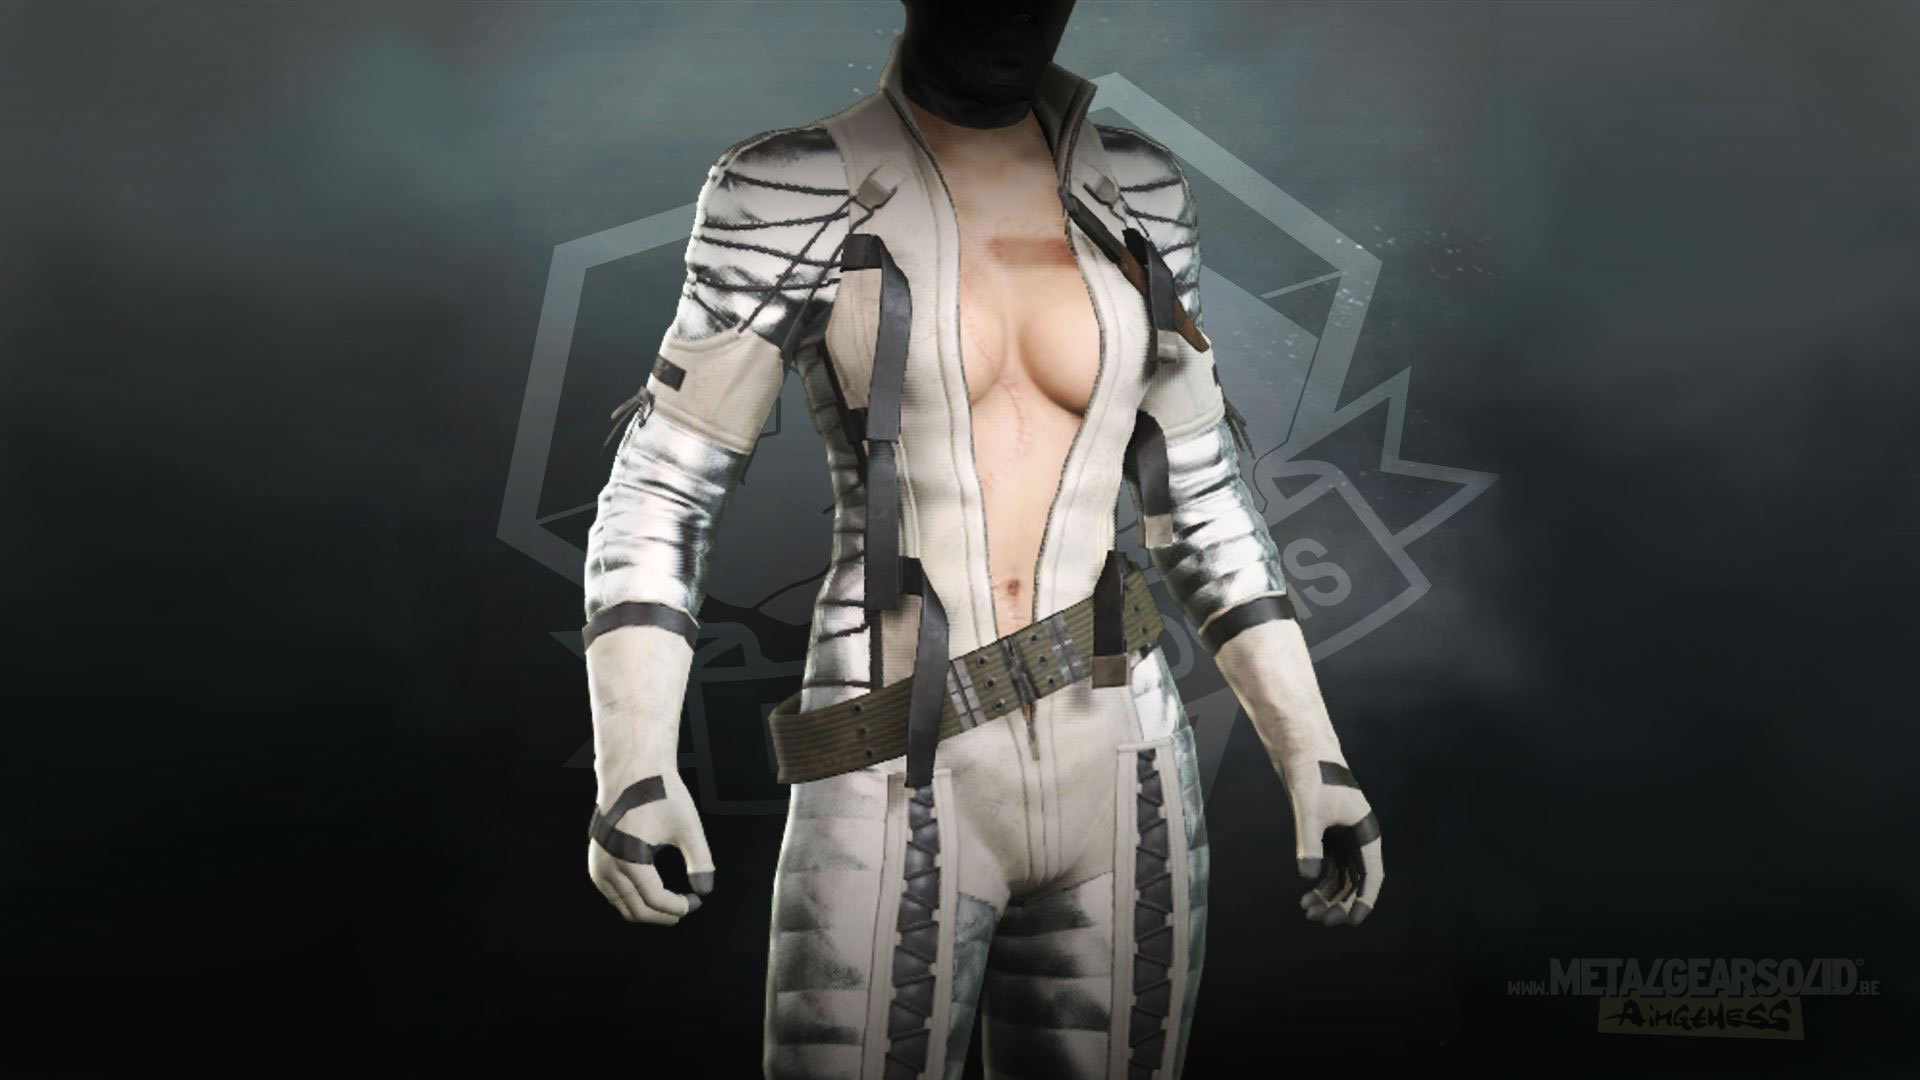 mgsv-tpp-costumes-dlc-tenue-infiltration-the-boss-01